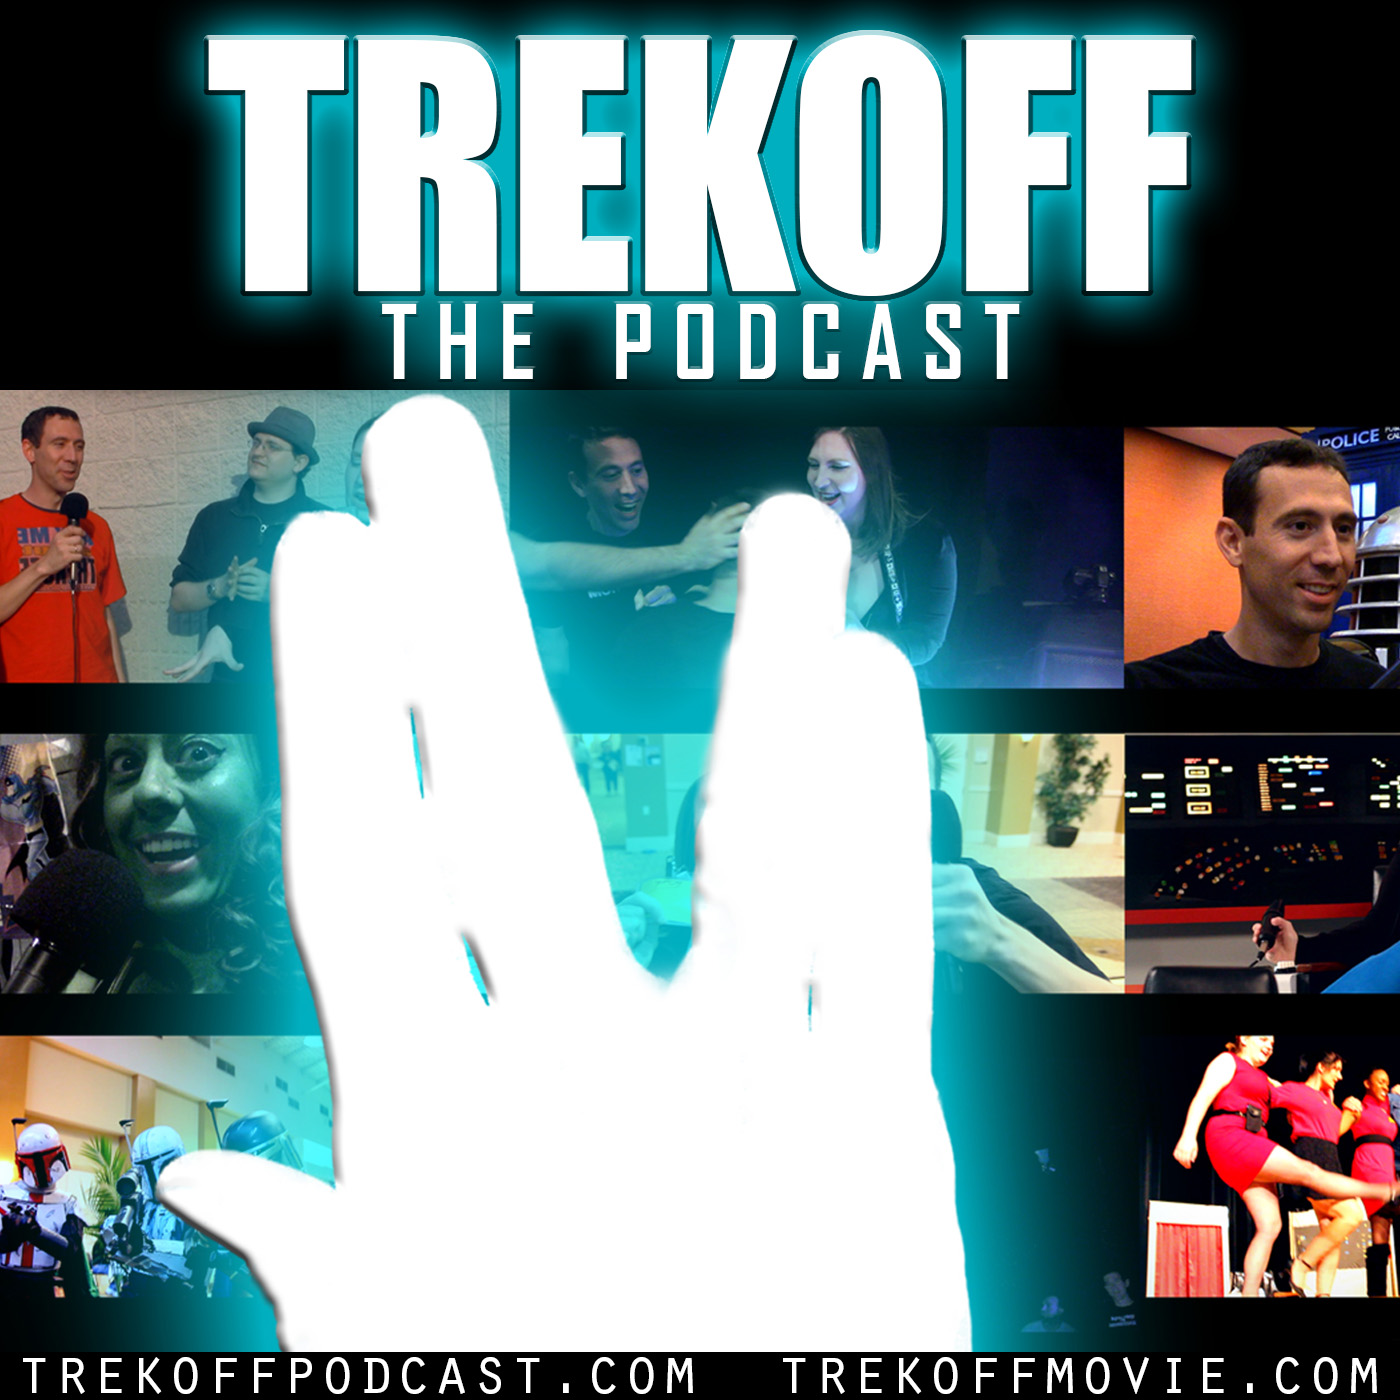 Kirk vs. Spock vs. Picard: LIVE at Intervention 2016!